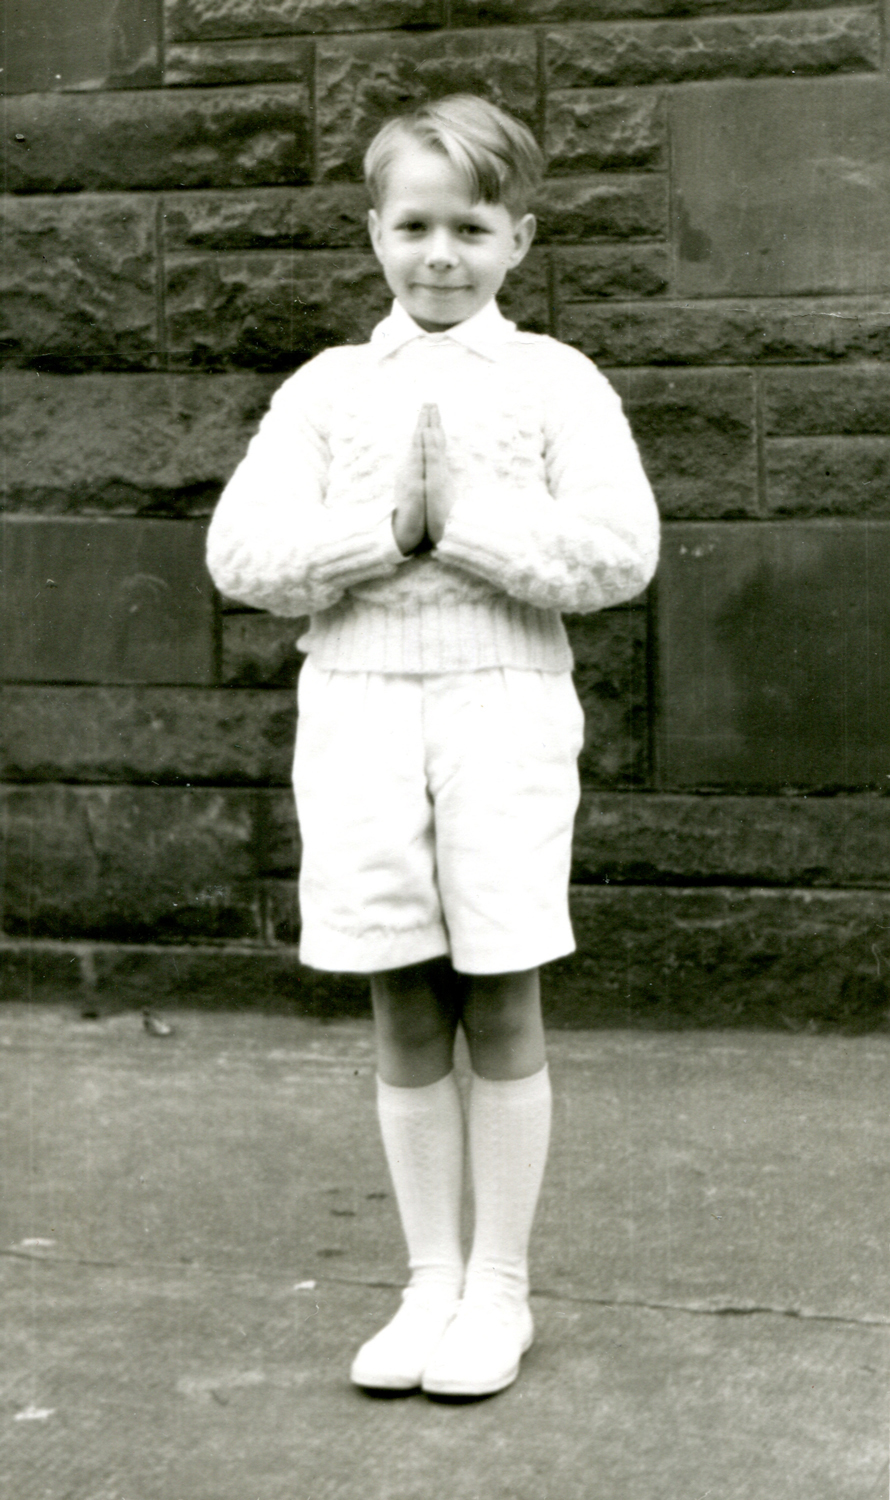 Boy On His Confirmation Day c.1958